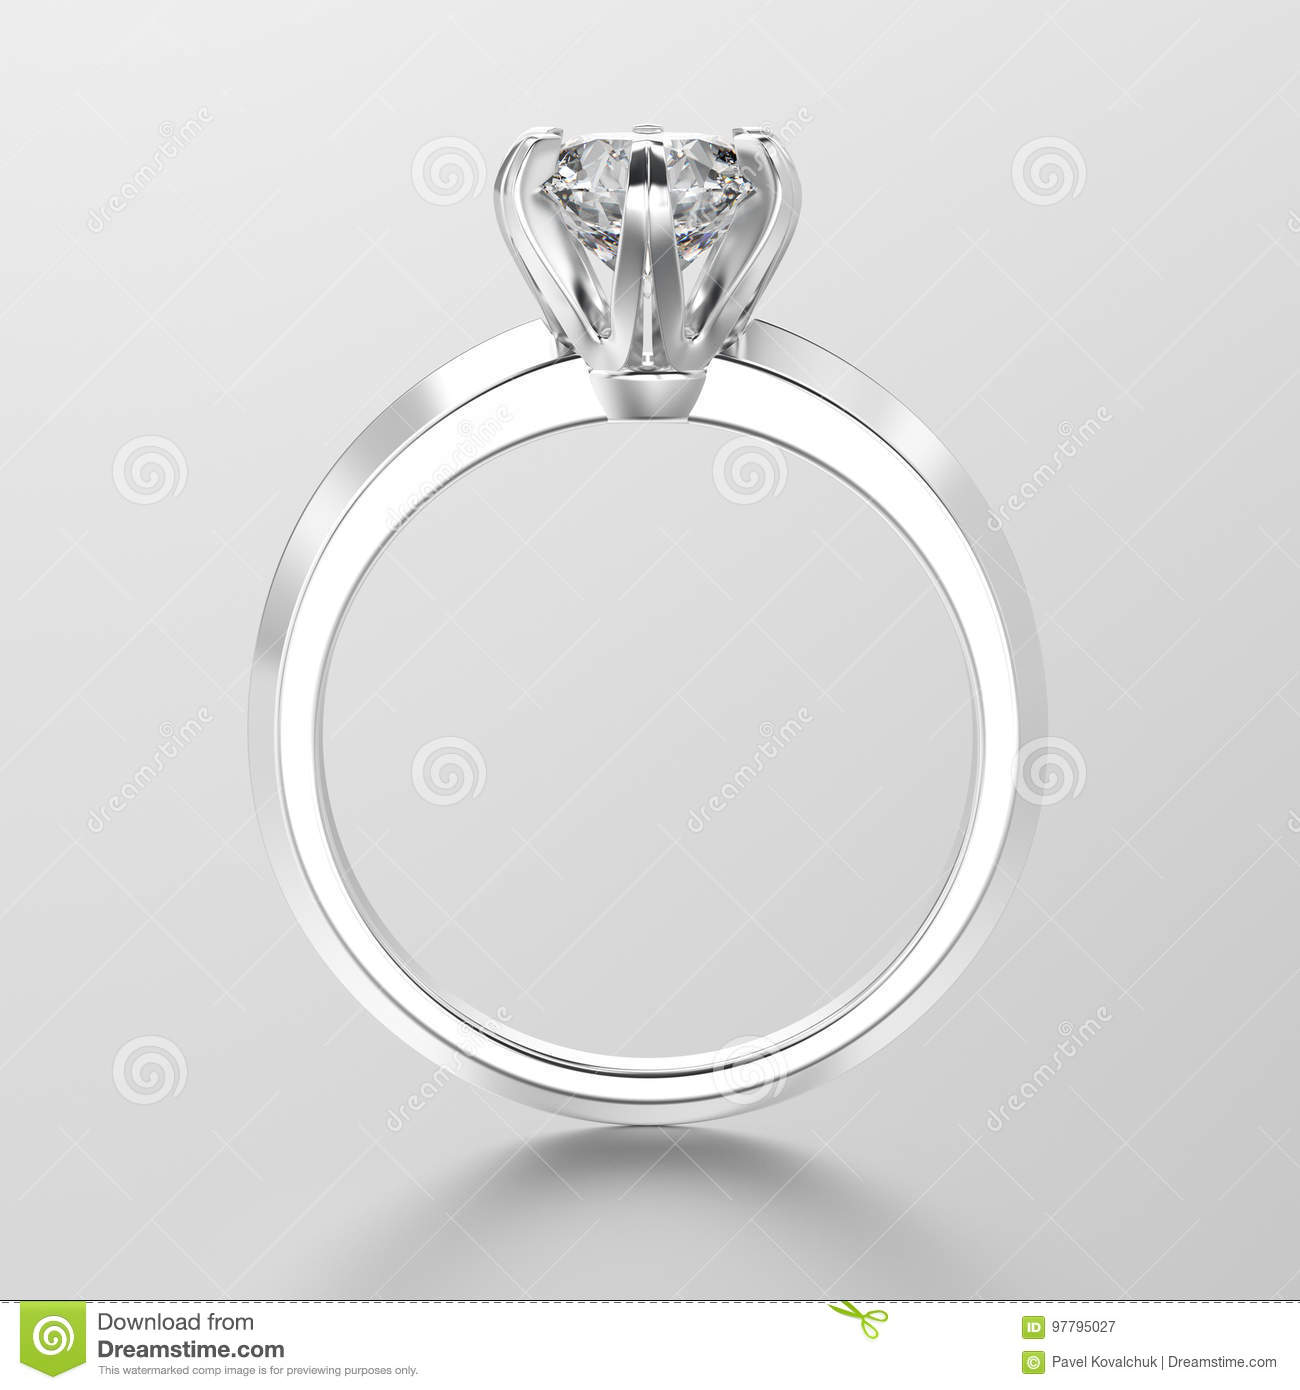 3D illustration white gold or silver traditional solitaire engagement ring with diamond